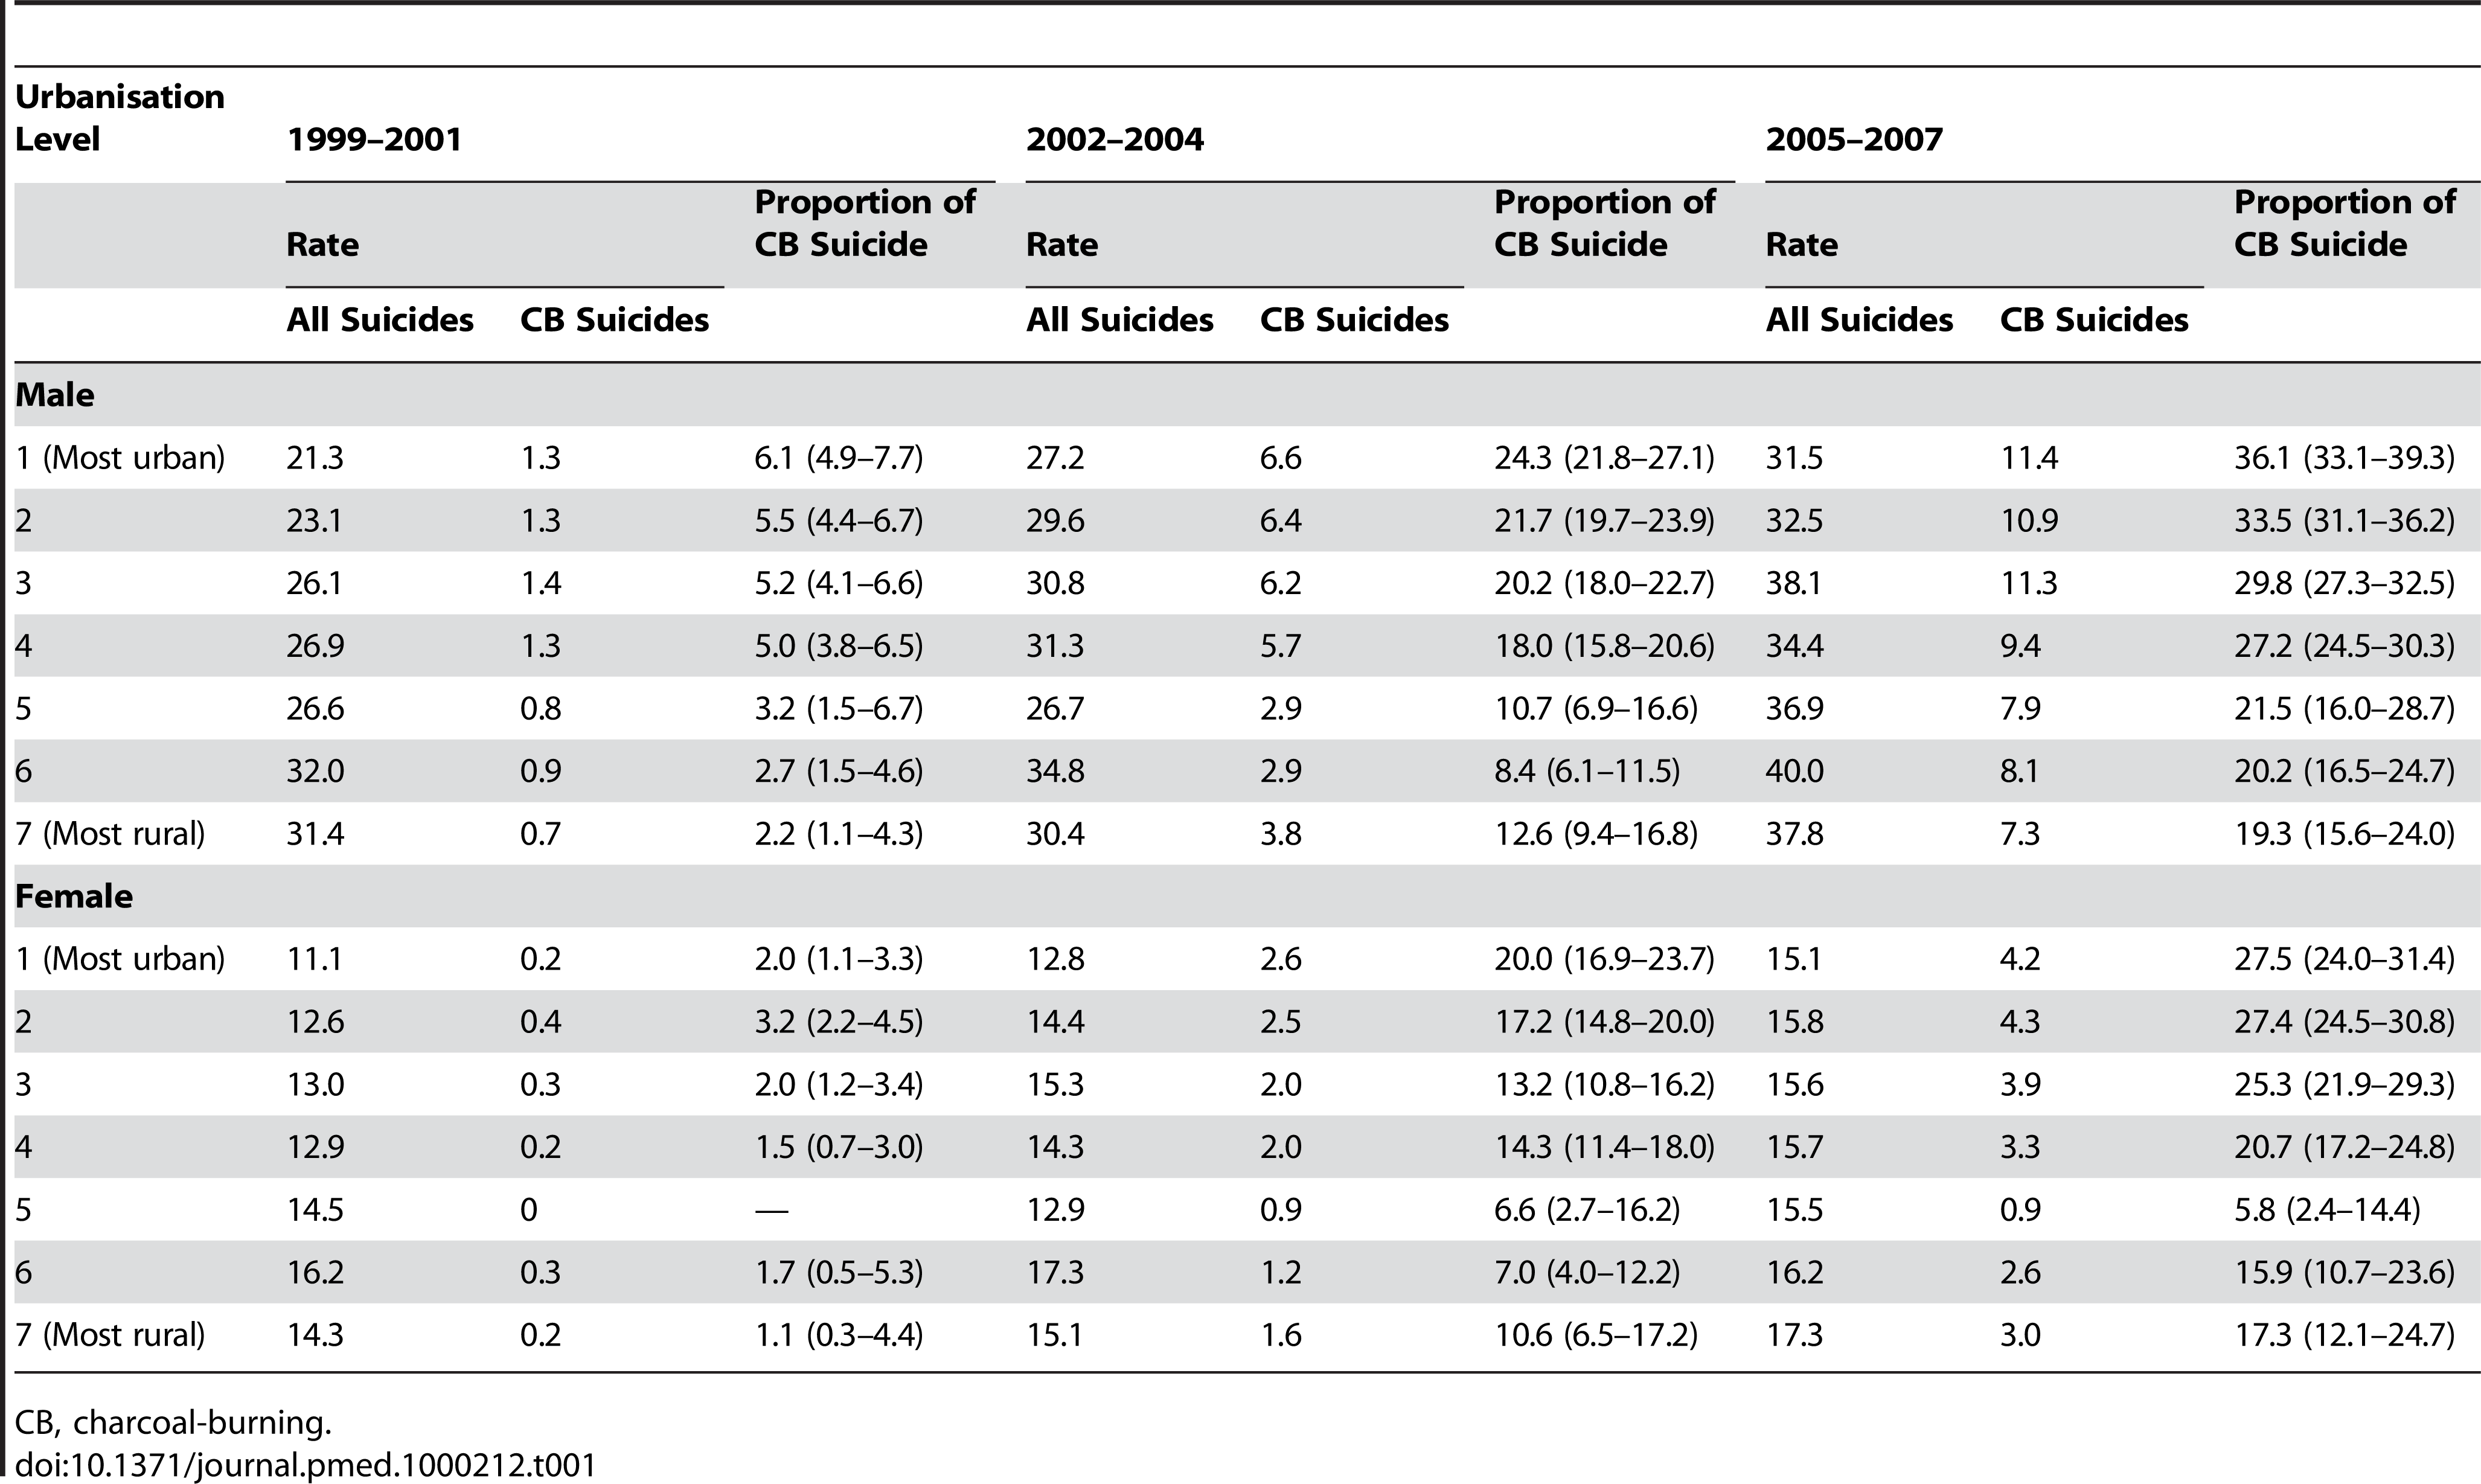 Age-standardised rates for all suicides and charcoal-burning suicides and the proportions of charcoal-burning suicide (with 95% confidence intervals) in Taiwan by sex, time period (1999–2001, 2002–2004, 2005–2007), and urbanisation level.